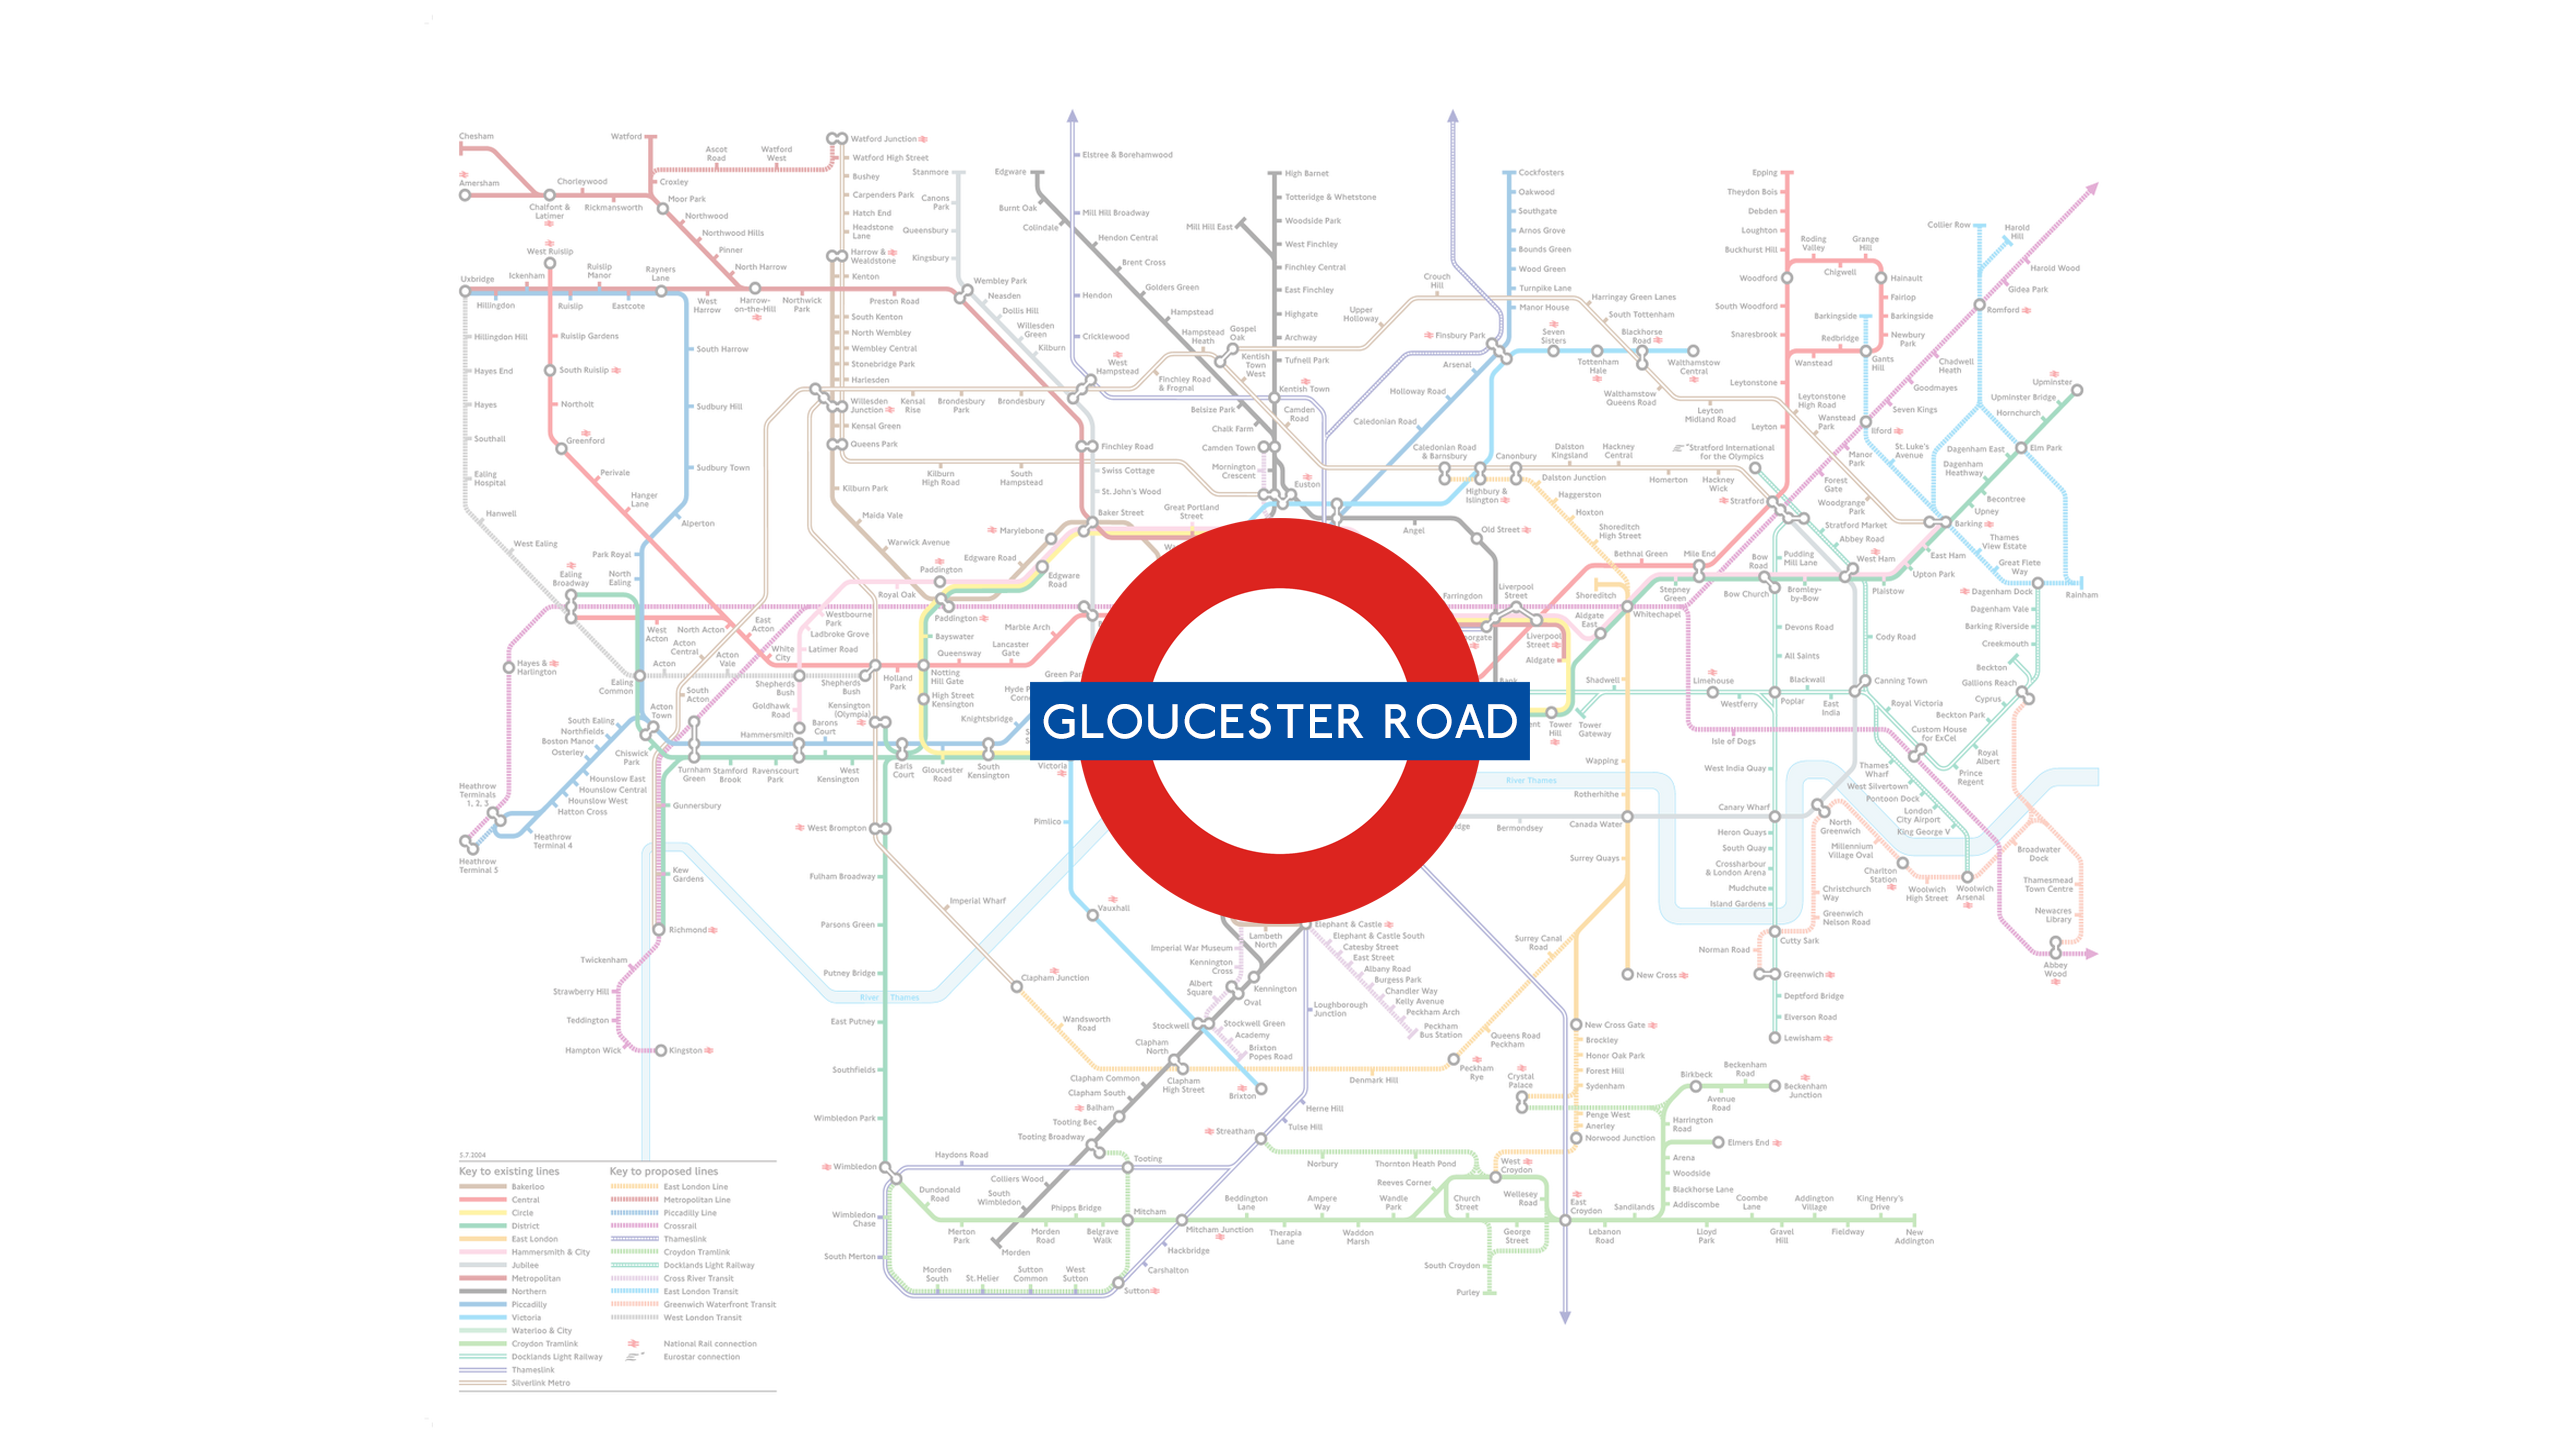 Gloucester Road (Map)